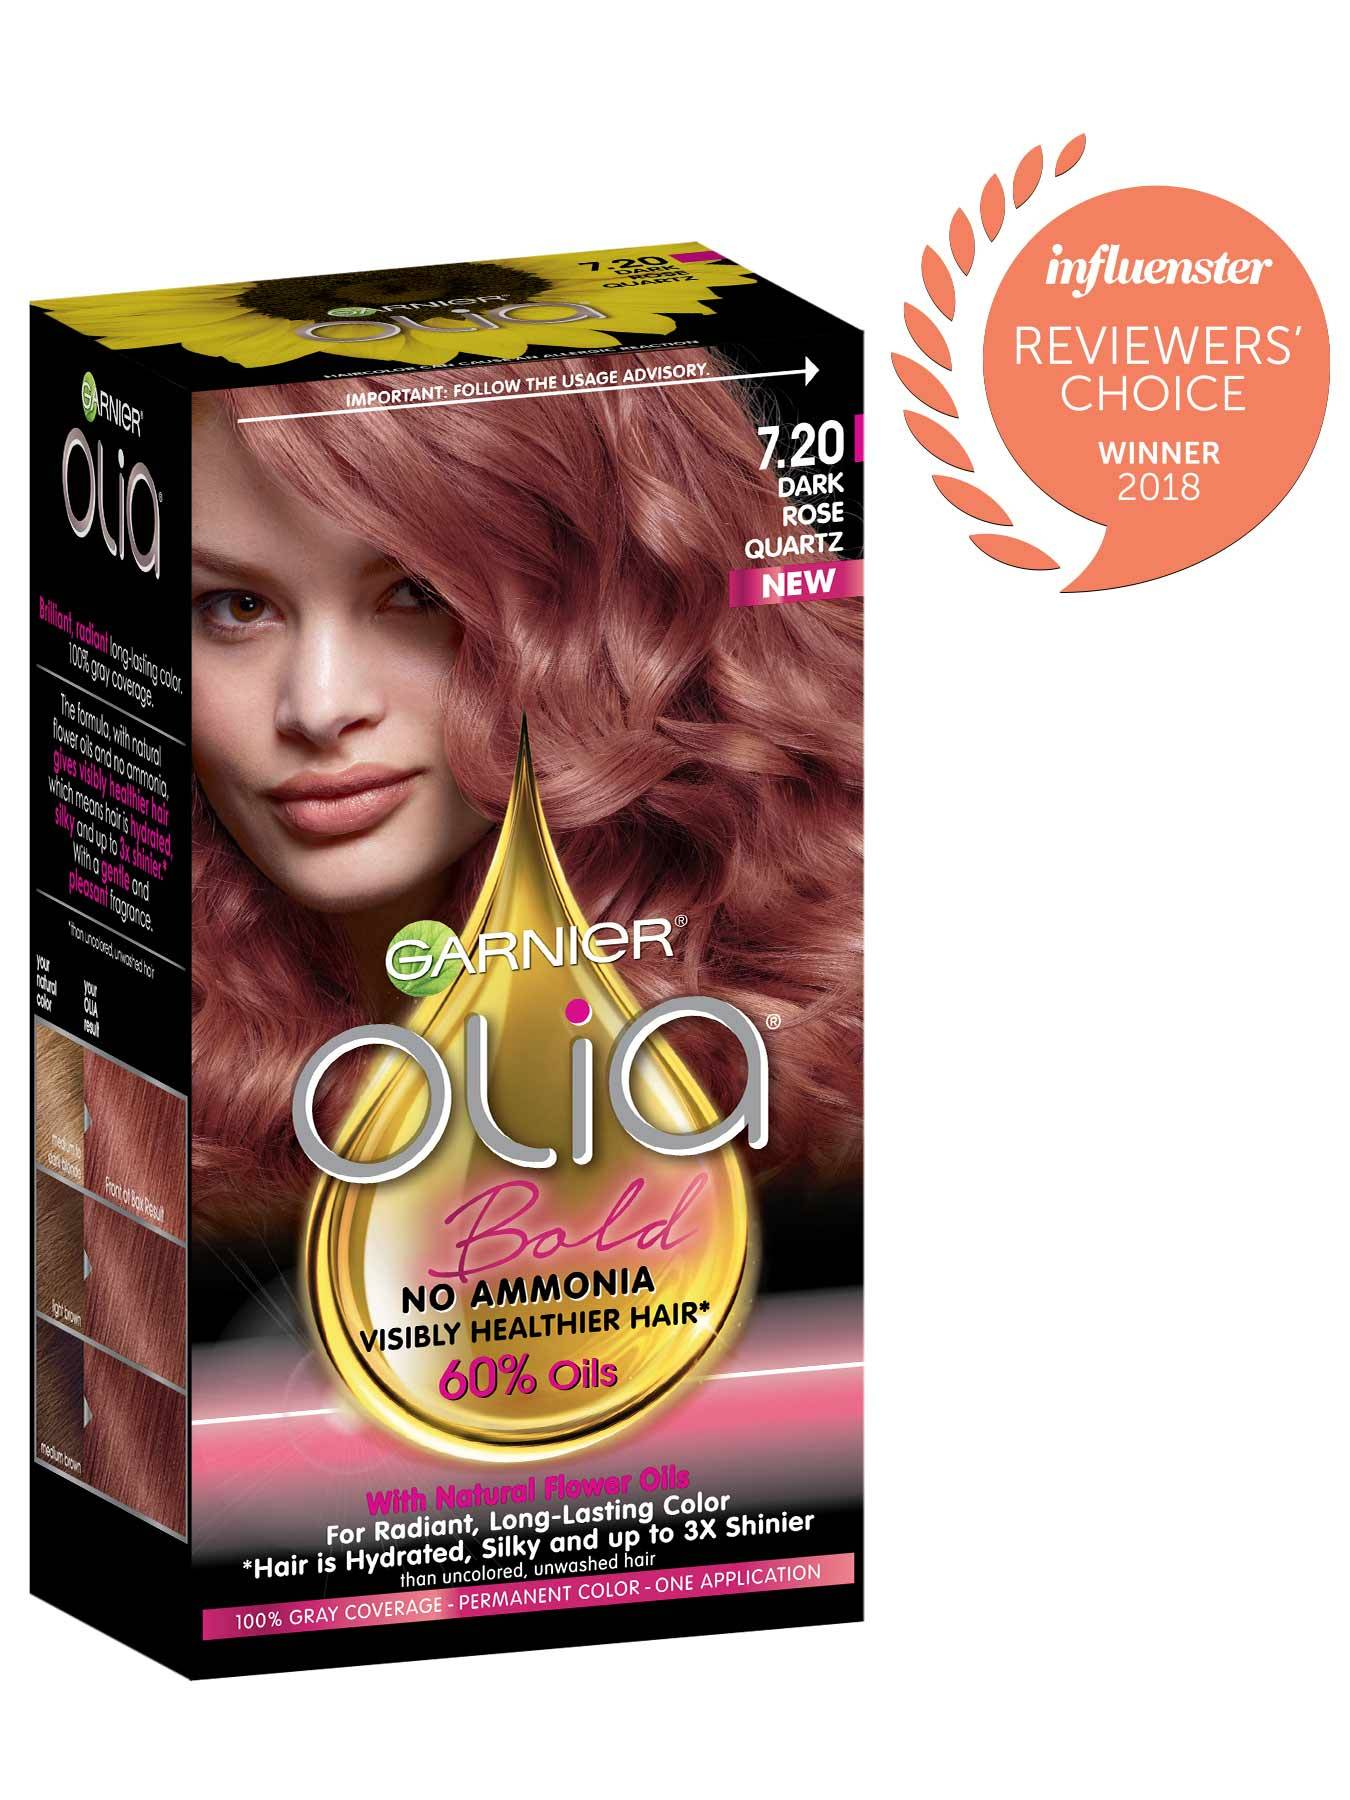 Garnier Olia Bold Packshot Award 7.20 Dark Rose Quartz